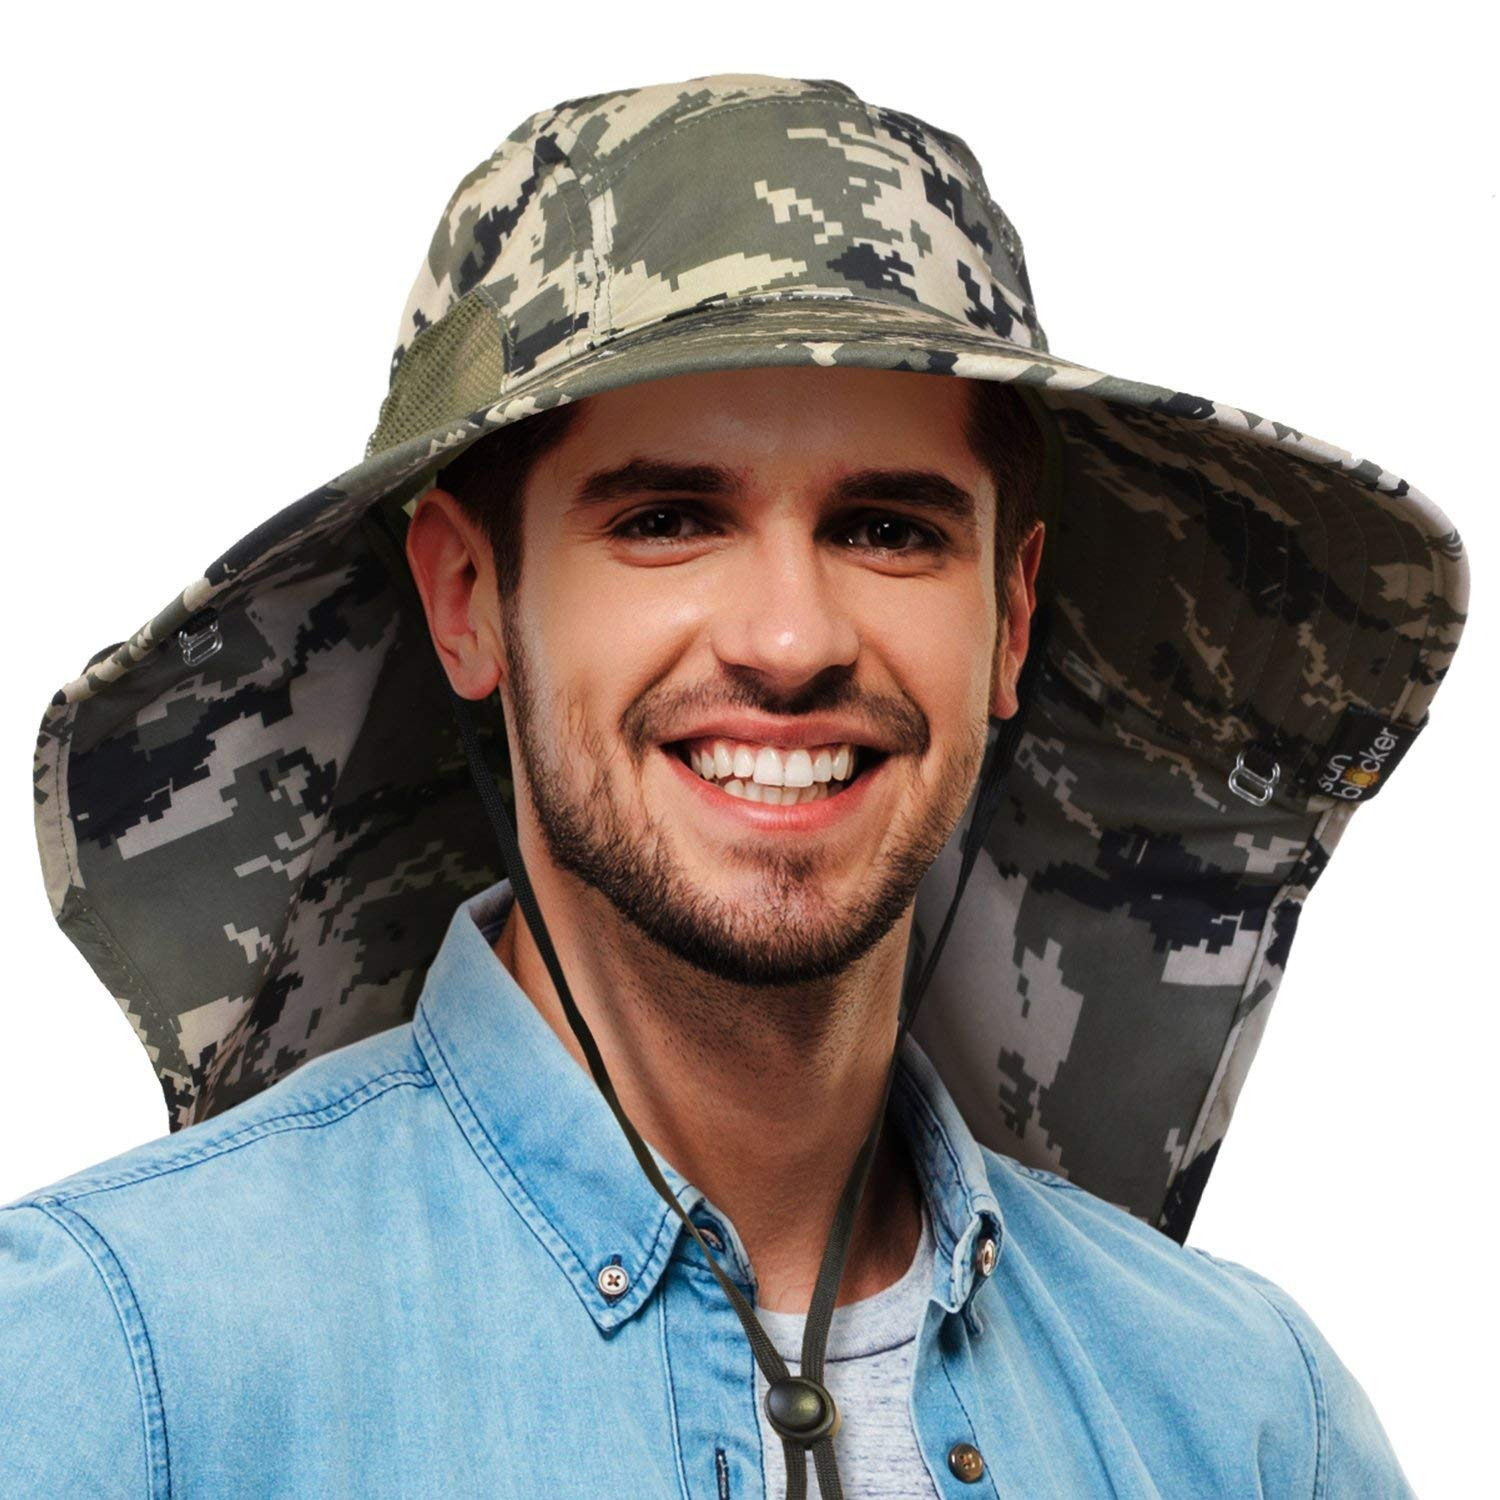 a5c4a5228320d Get Quotations · Tirrinia Mens Wide Brim Sun Hat with Neck Flap Camouflage Fishing  Safari Cap for Women Outdoor